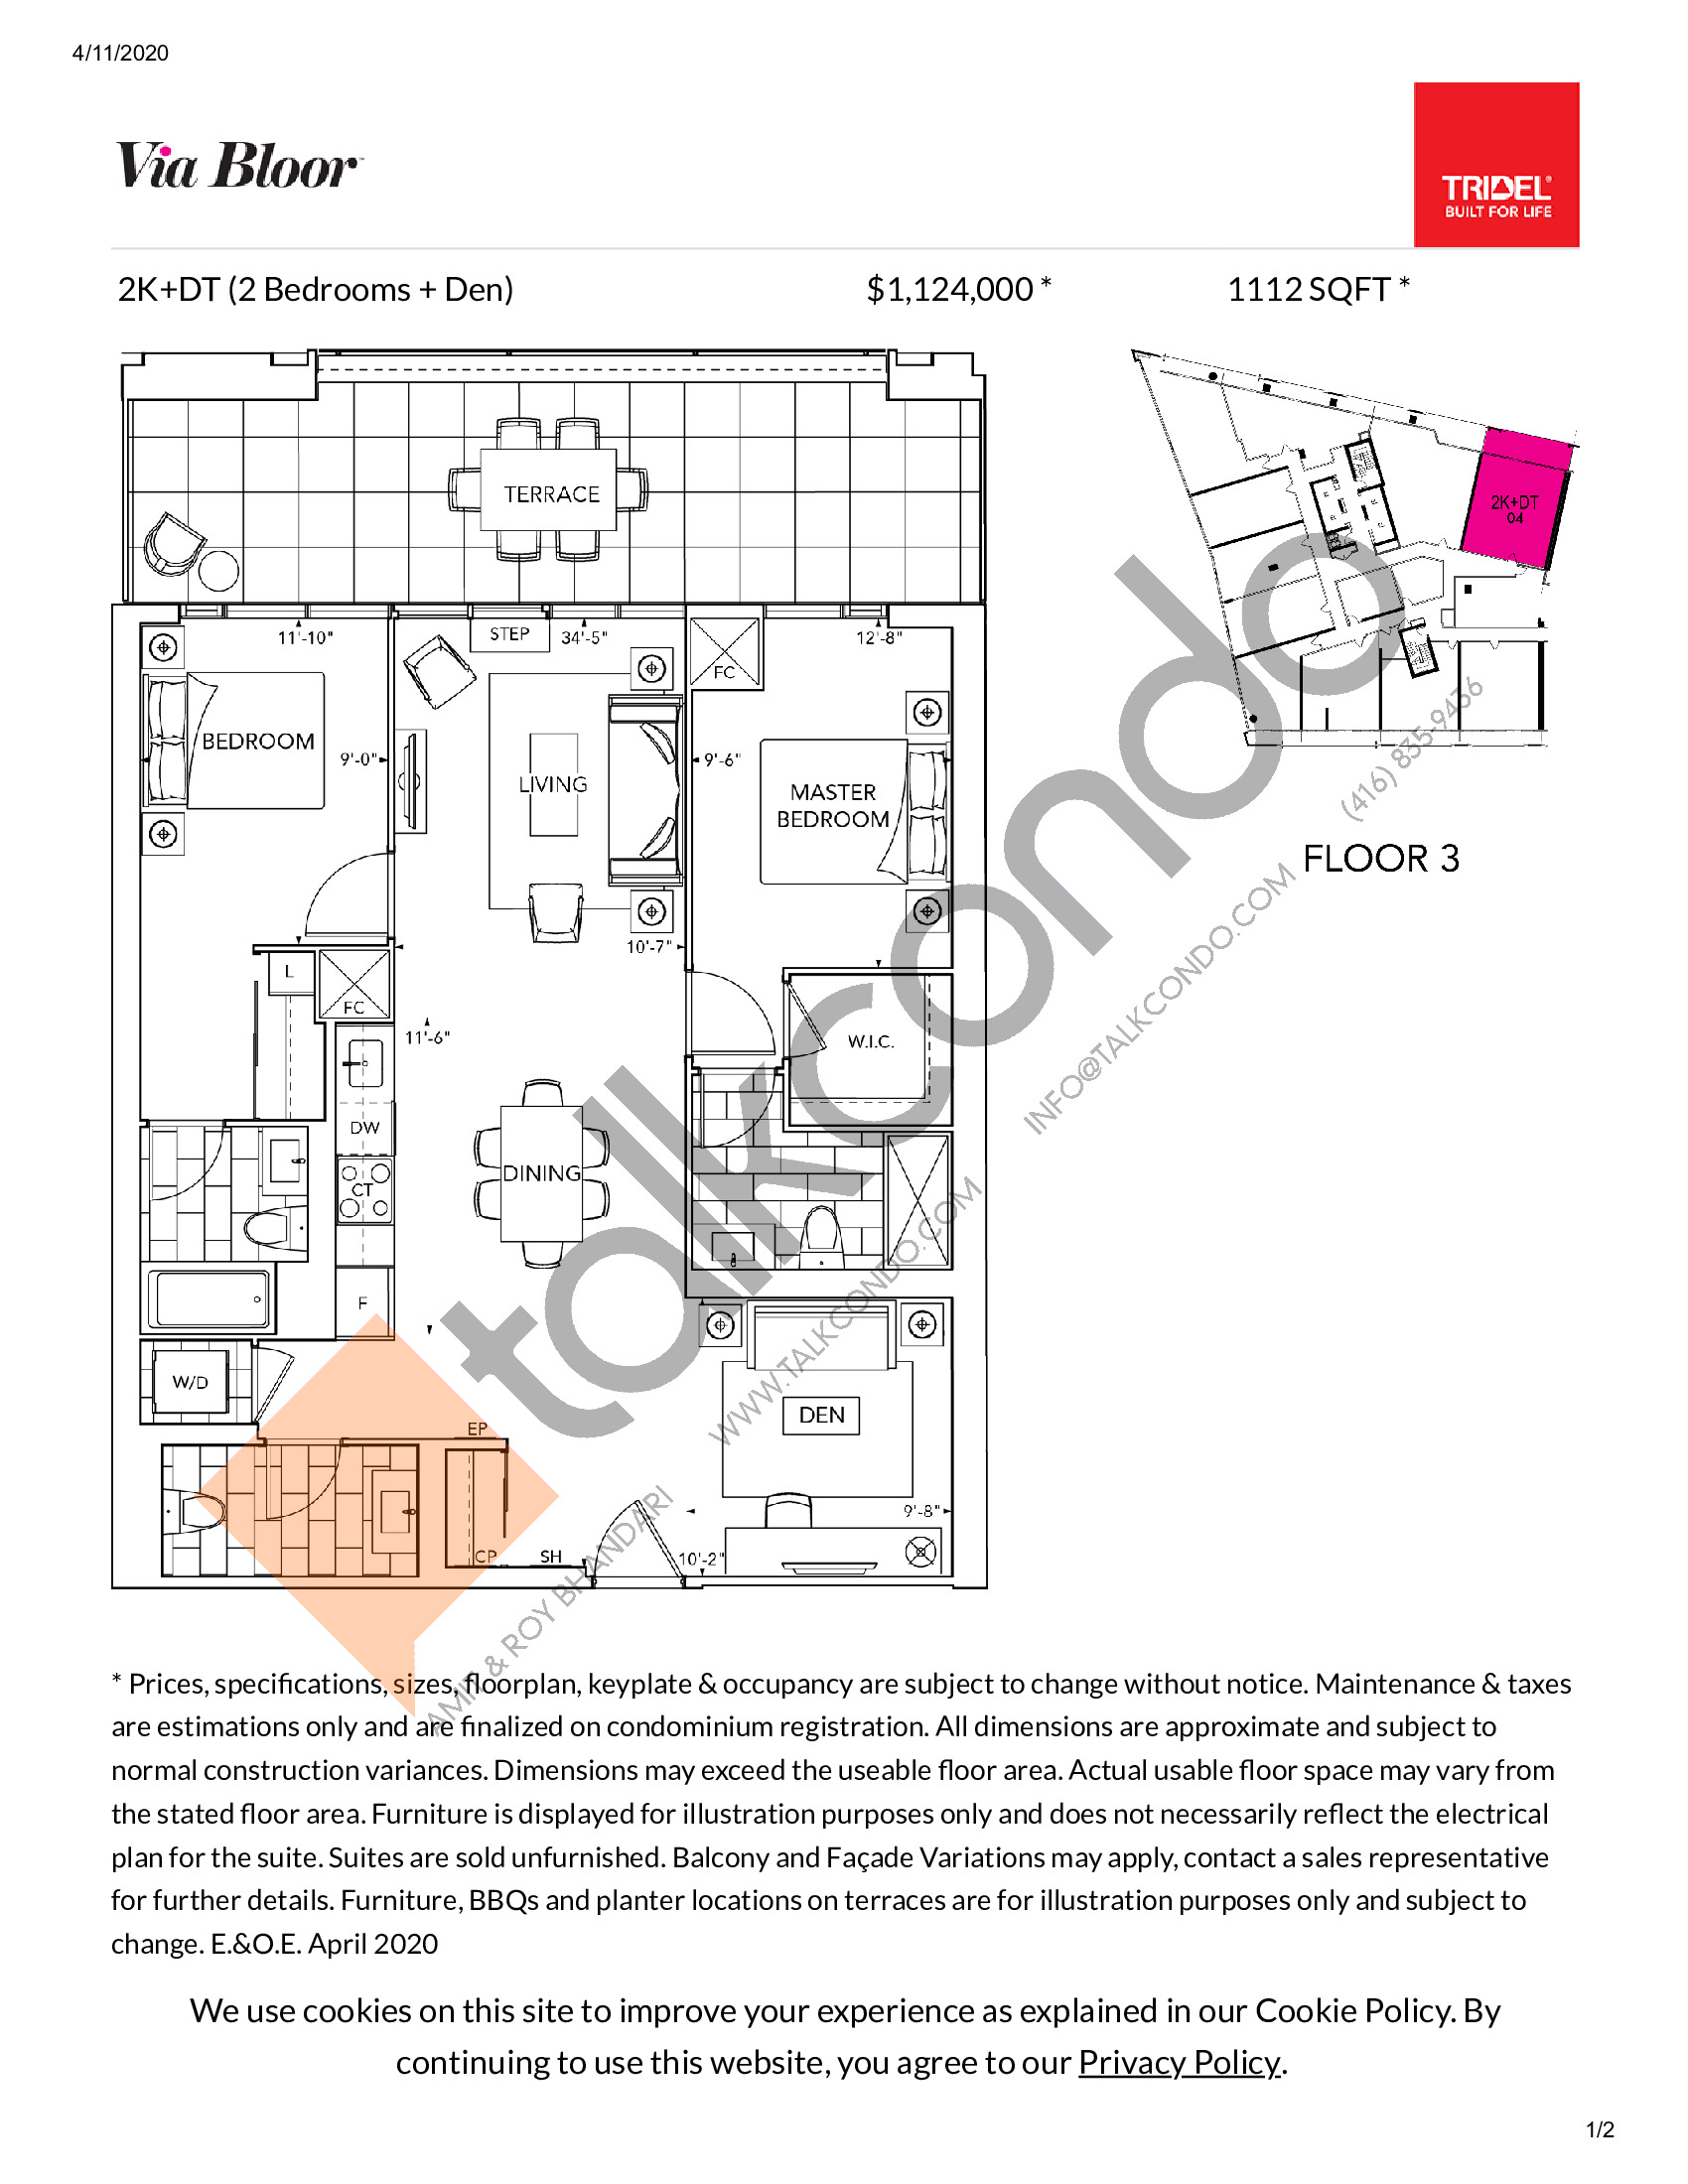 2K+DT Floor Plan at Via Bloor Condos - 1112 sq.ft